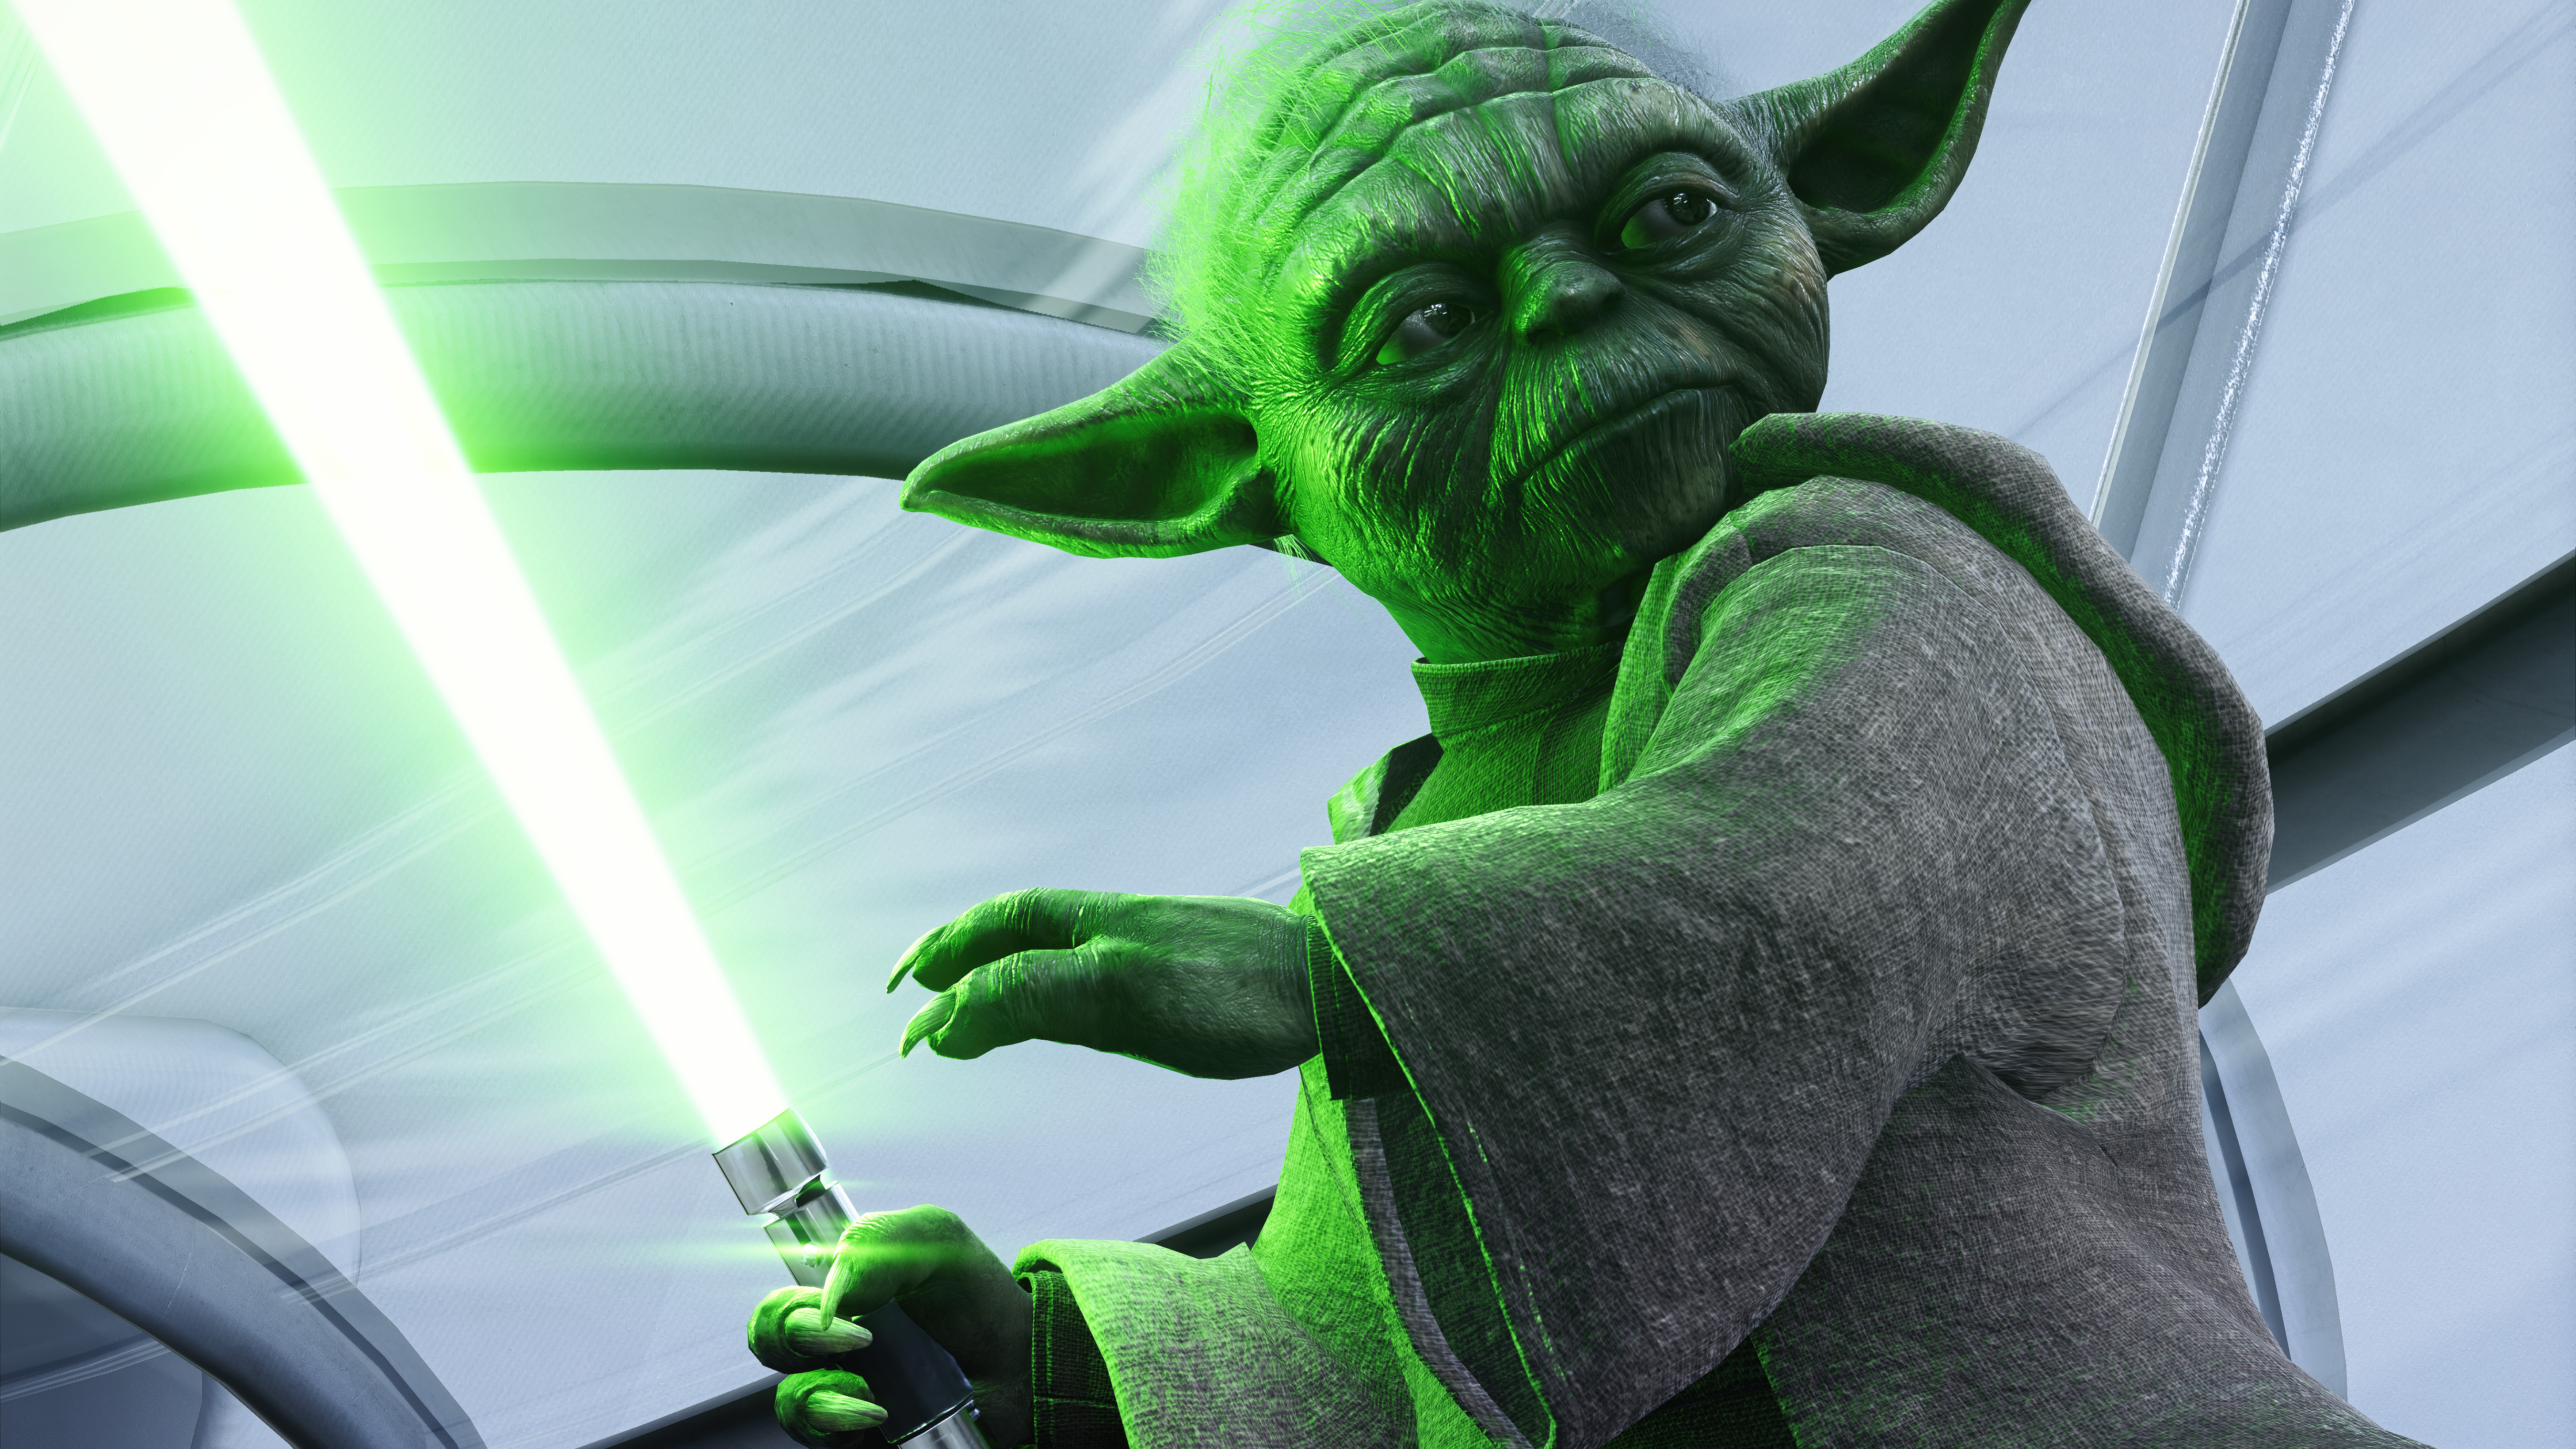 Yoda Star Wars Battlefront Ii 5k Hd Games 4k Wallpapers Images Backgrounds Photos And Pictures